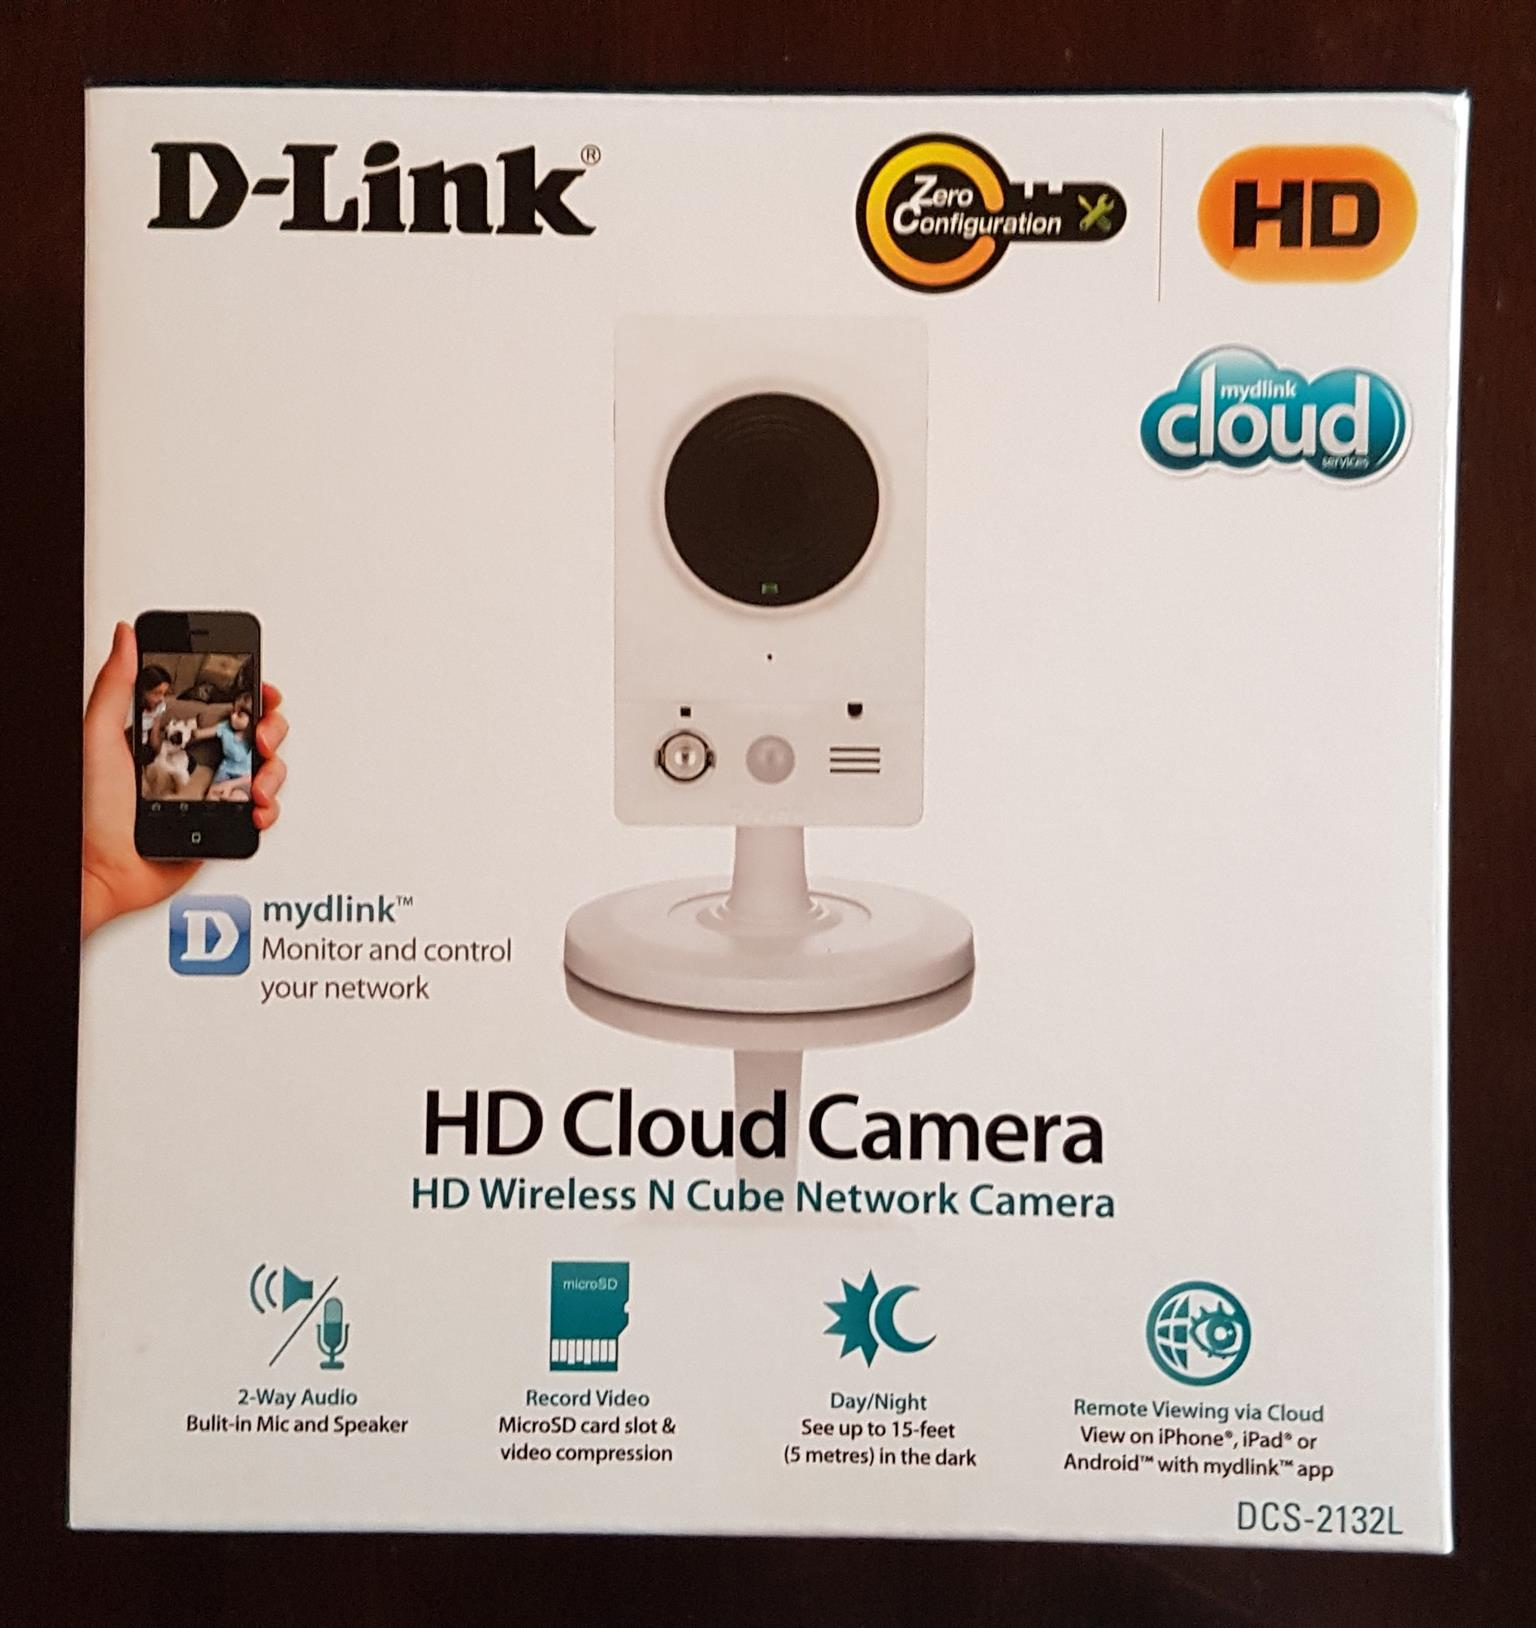 D-Link HD Cloud Camera